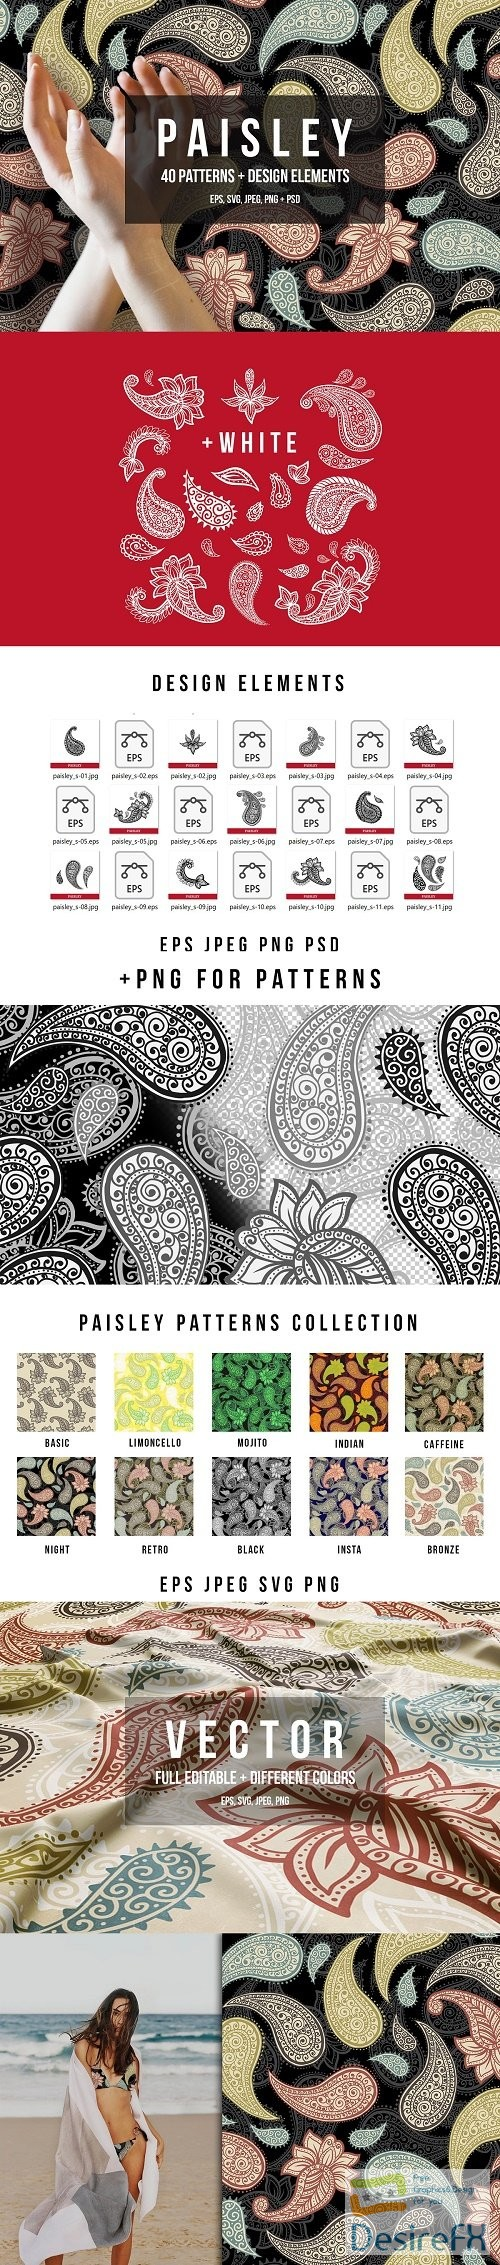 Paisley Patterns Collection - 3702274